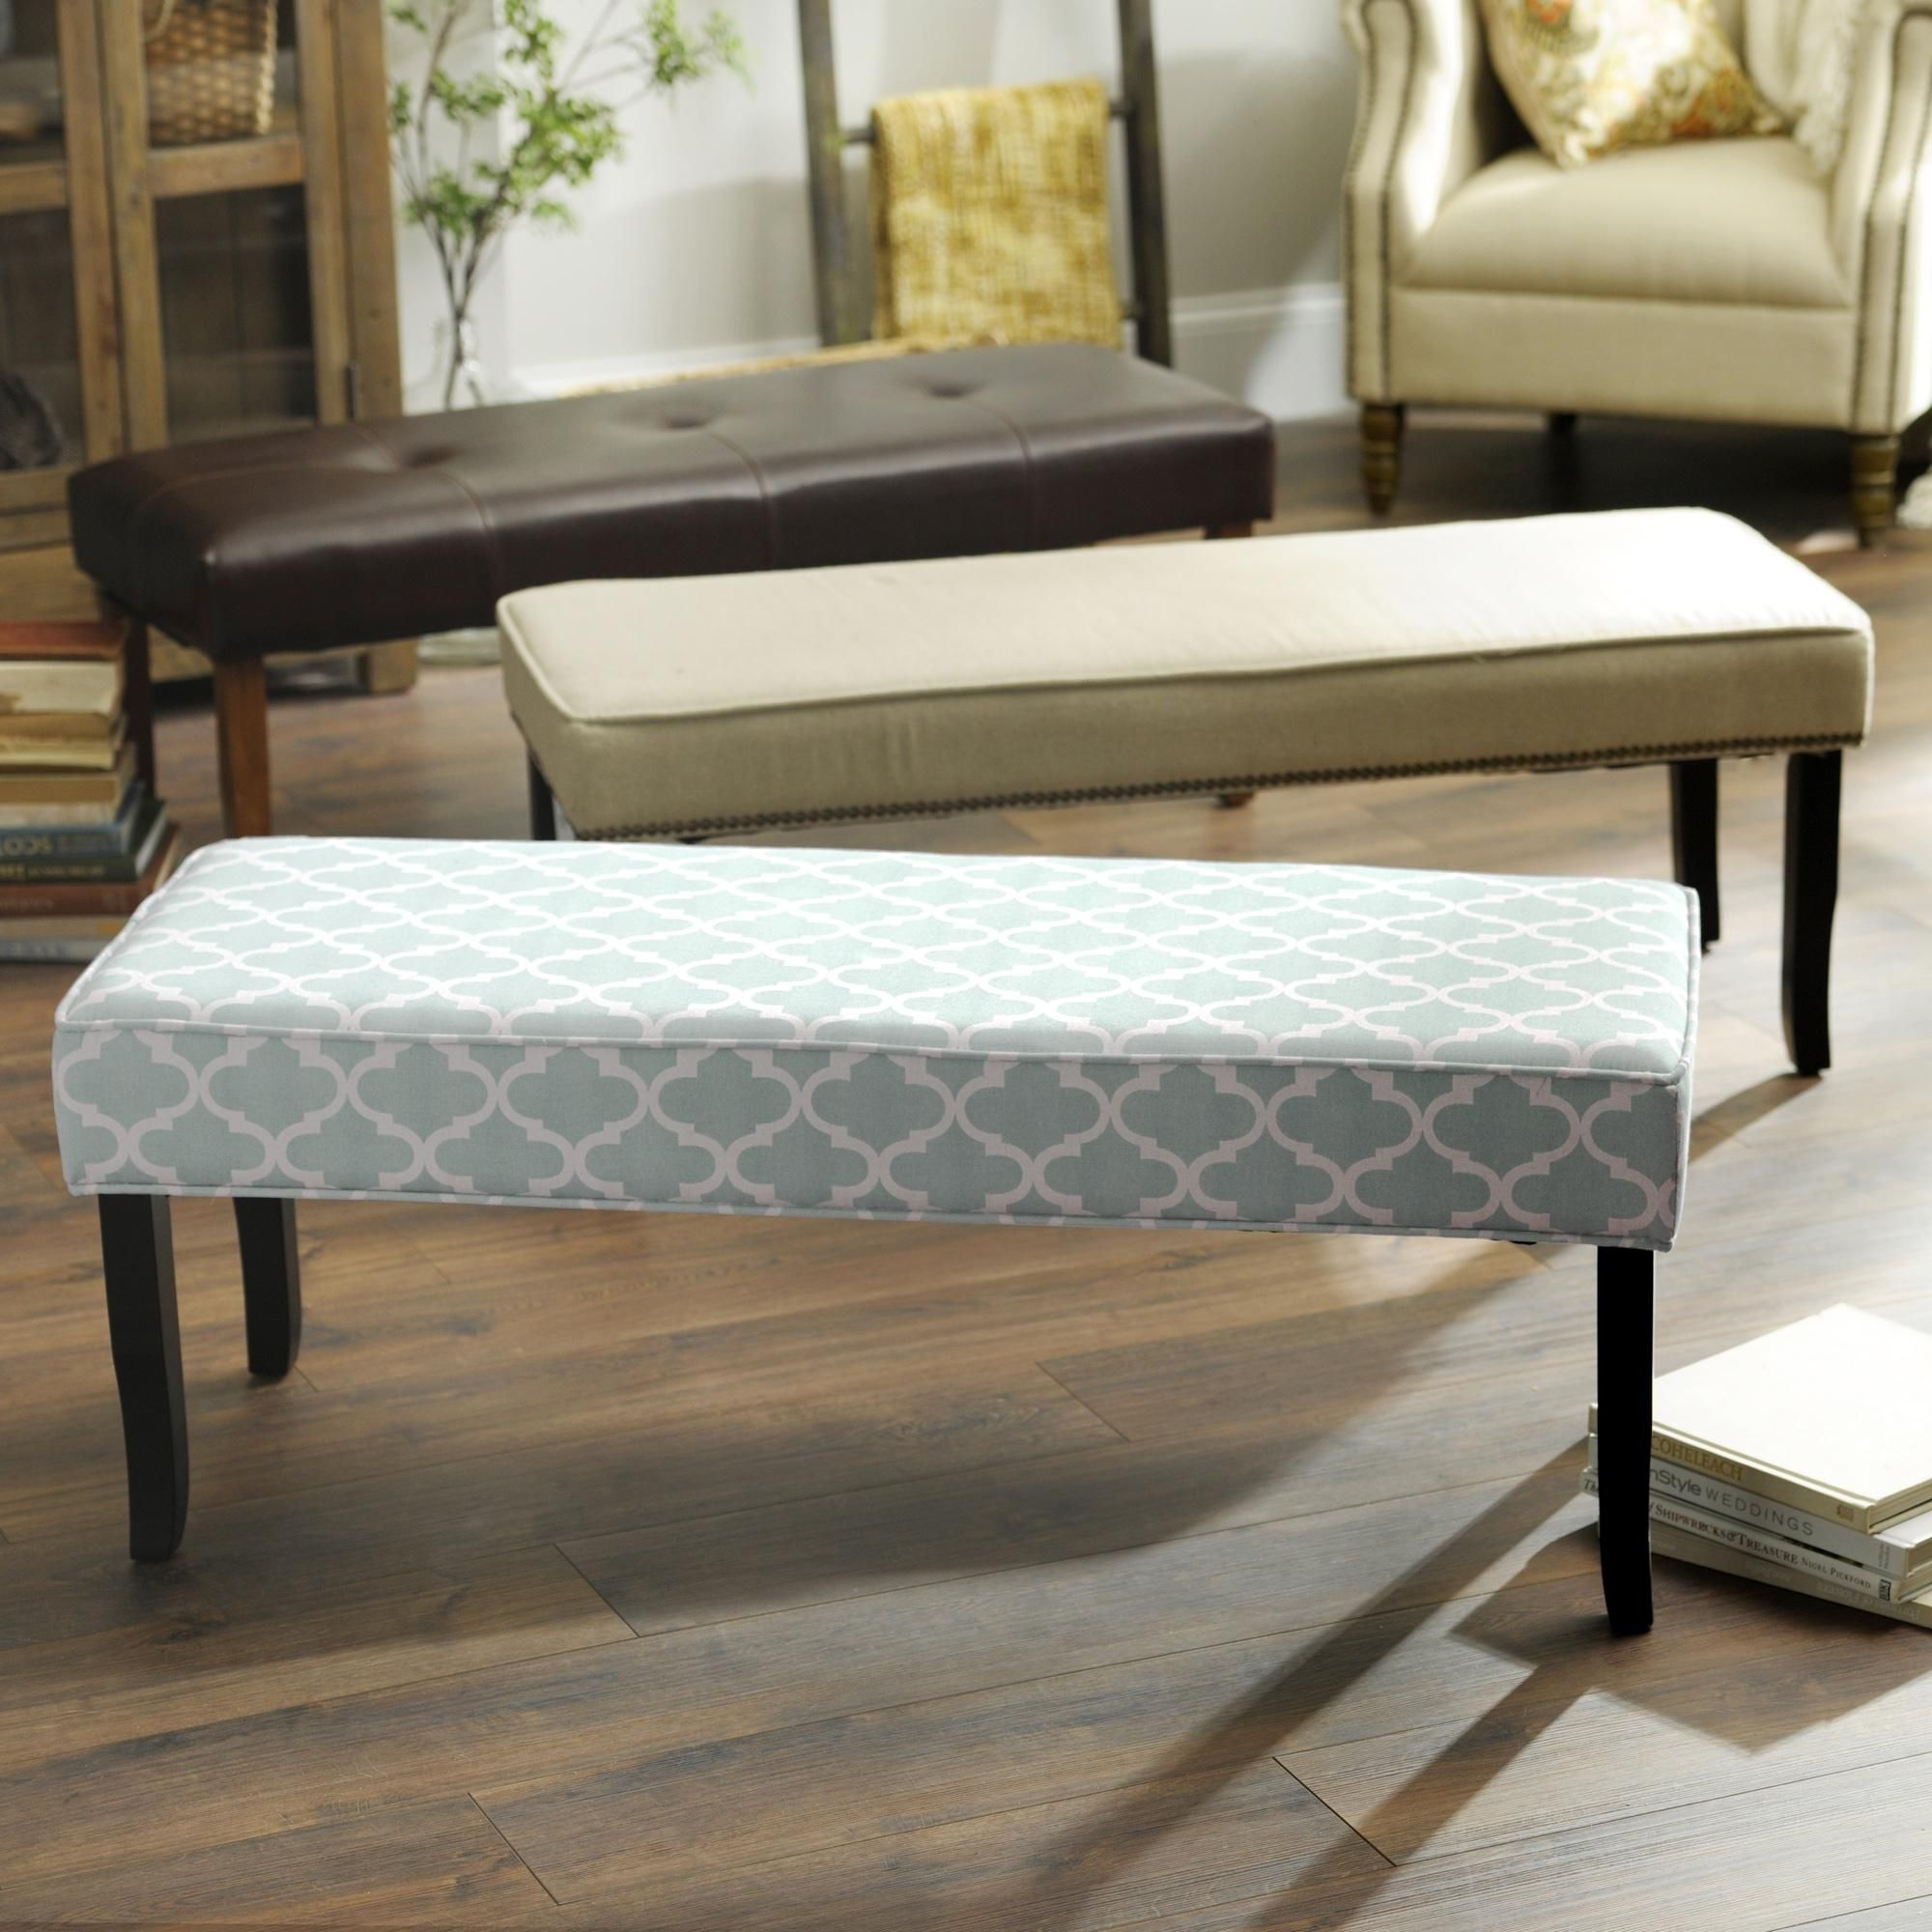 Bedroom Bench Sale Take A Seat Our Colorful And Decorative Benches Are A